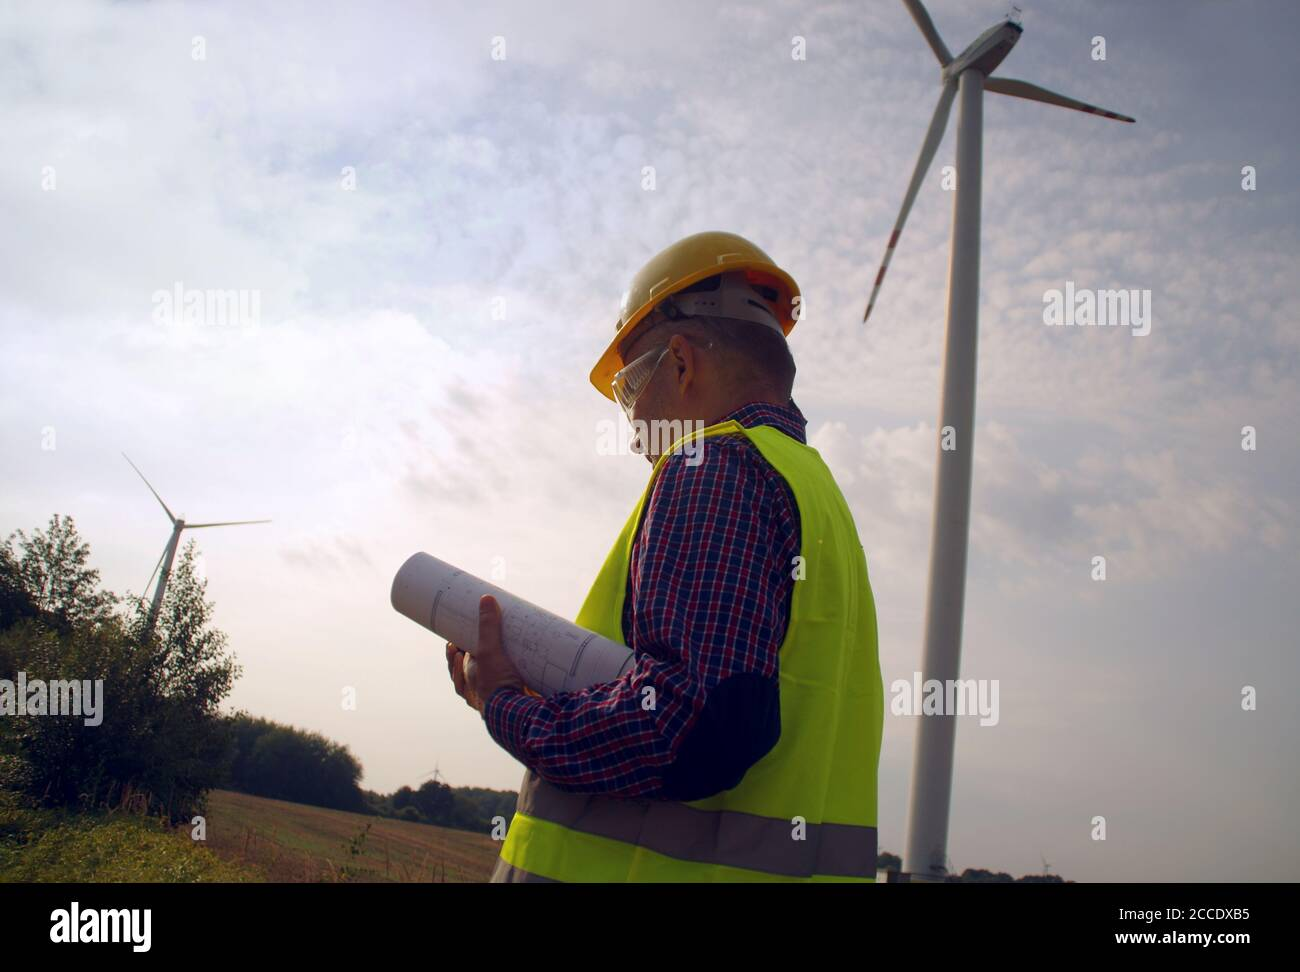 Engineer in a wind turbine. A man in a helmet supervises the operation of the electric windmills. Ecology and renewable energy sources concept. Stock Photo